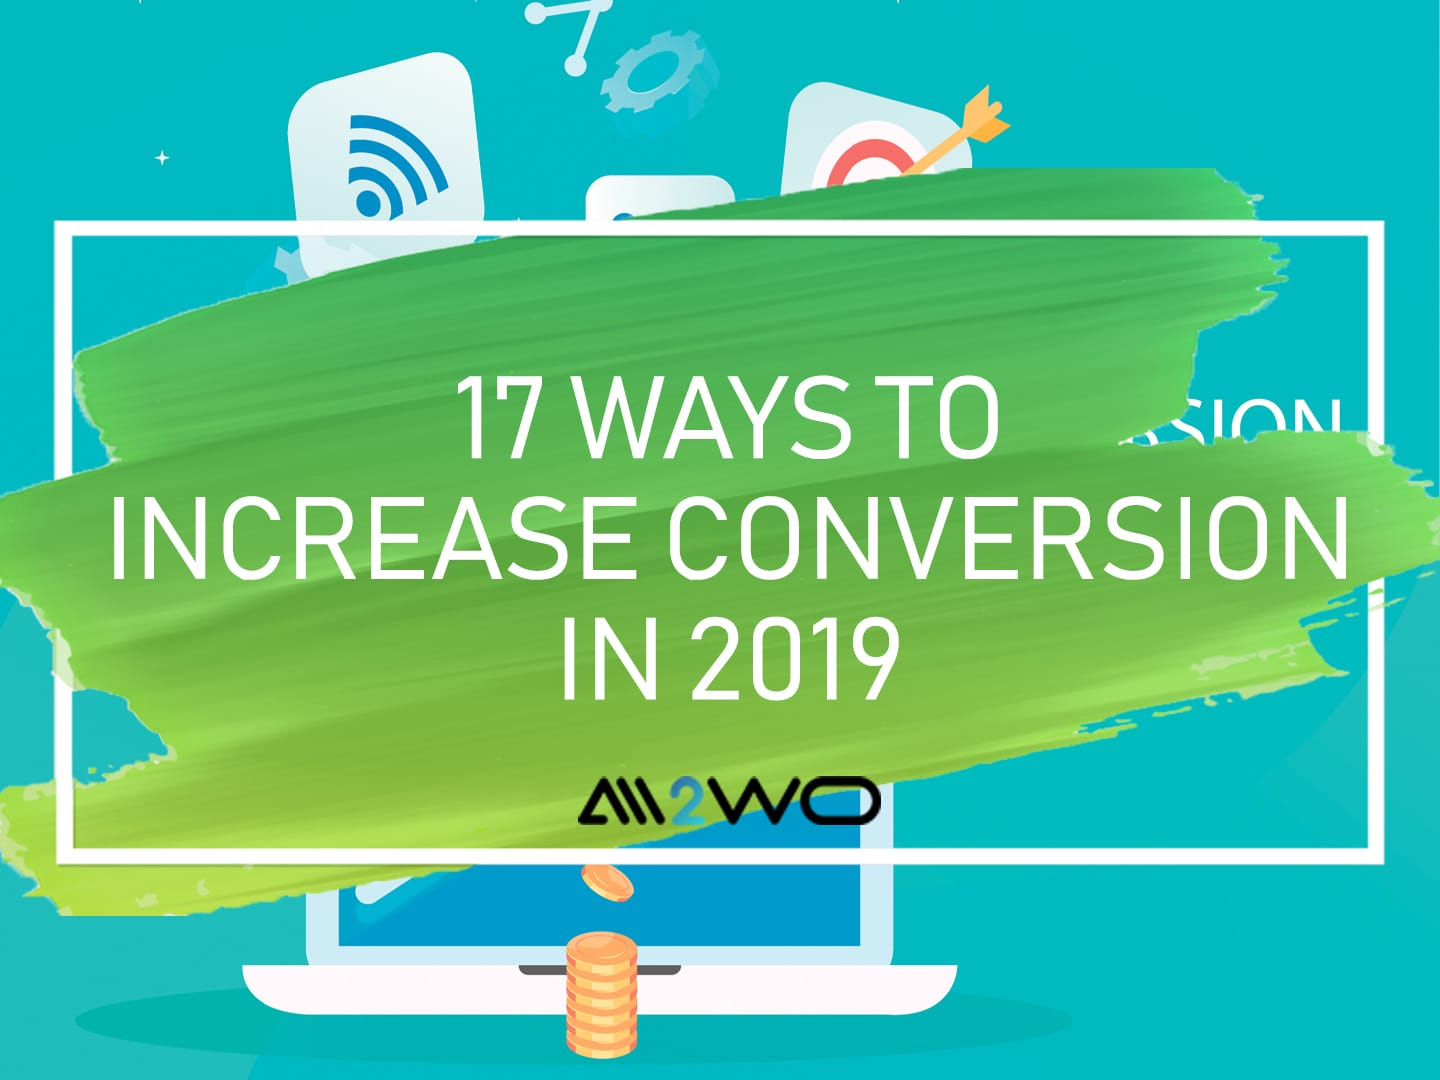 17-ways-to-increase-conversion-for-dropshipping-store-in-2019